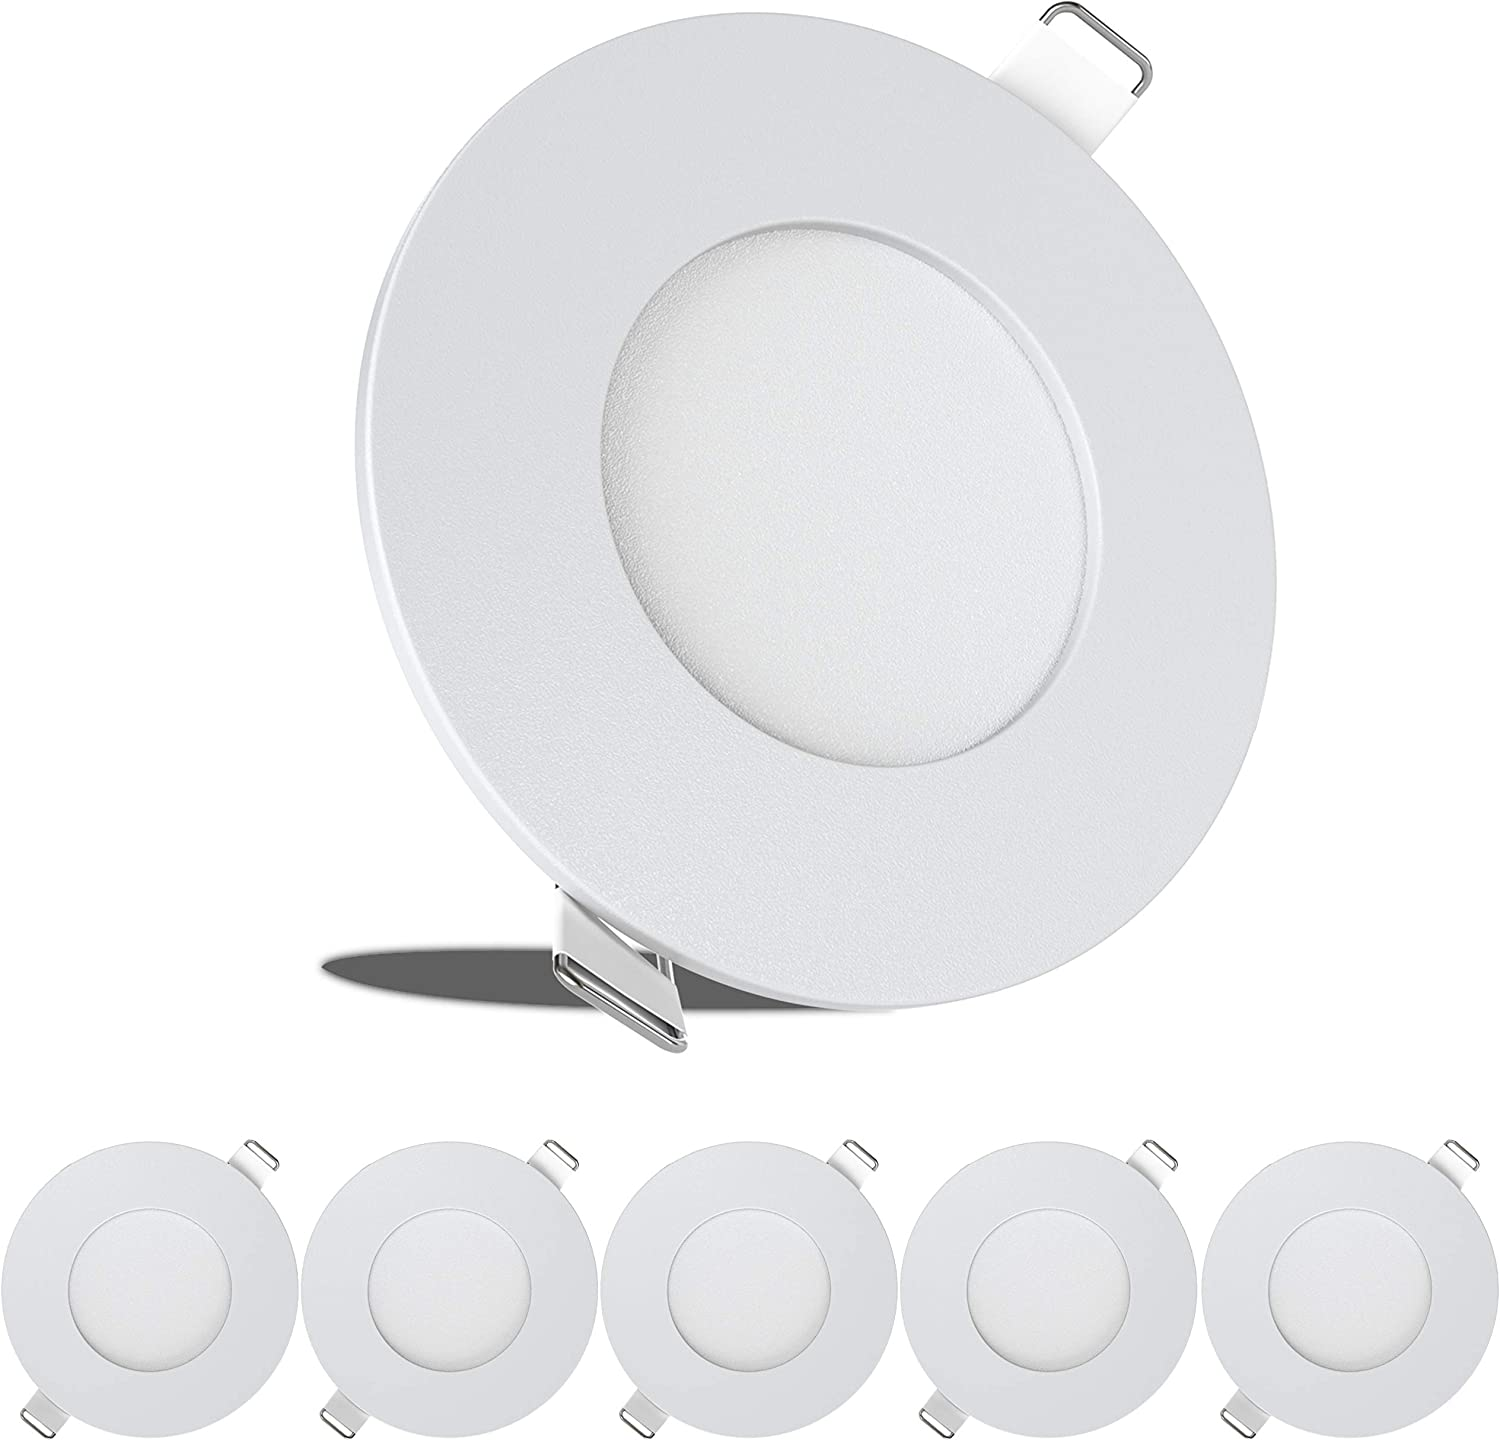 2021 autumn Cheap SALE Start and winter new 5 Pack Leisure LED RV Boat Supe 240 Recessed Light Lumen Ceiling